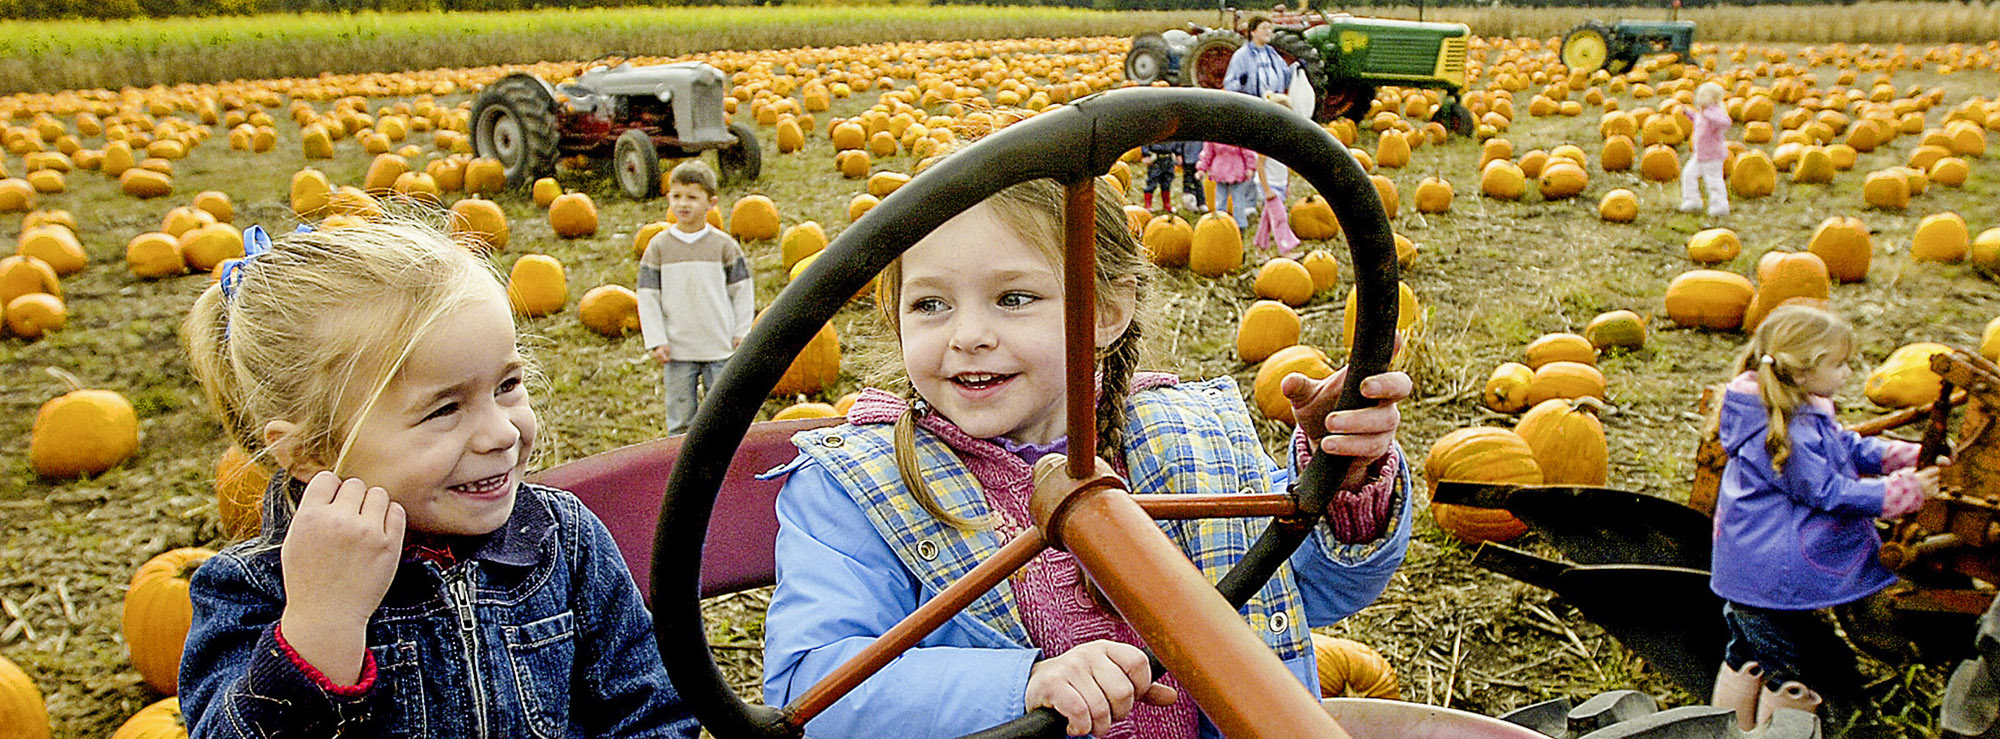 Young girls at pumpkin patch